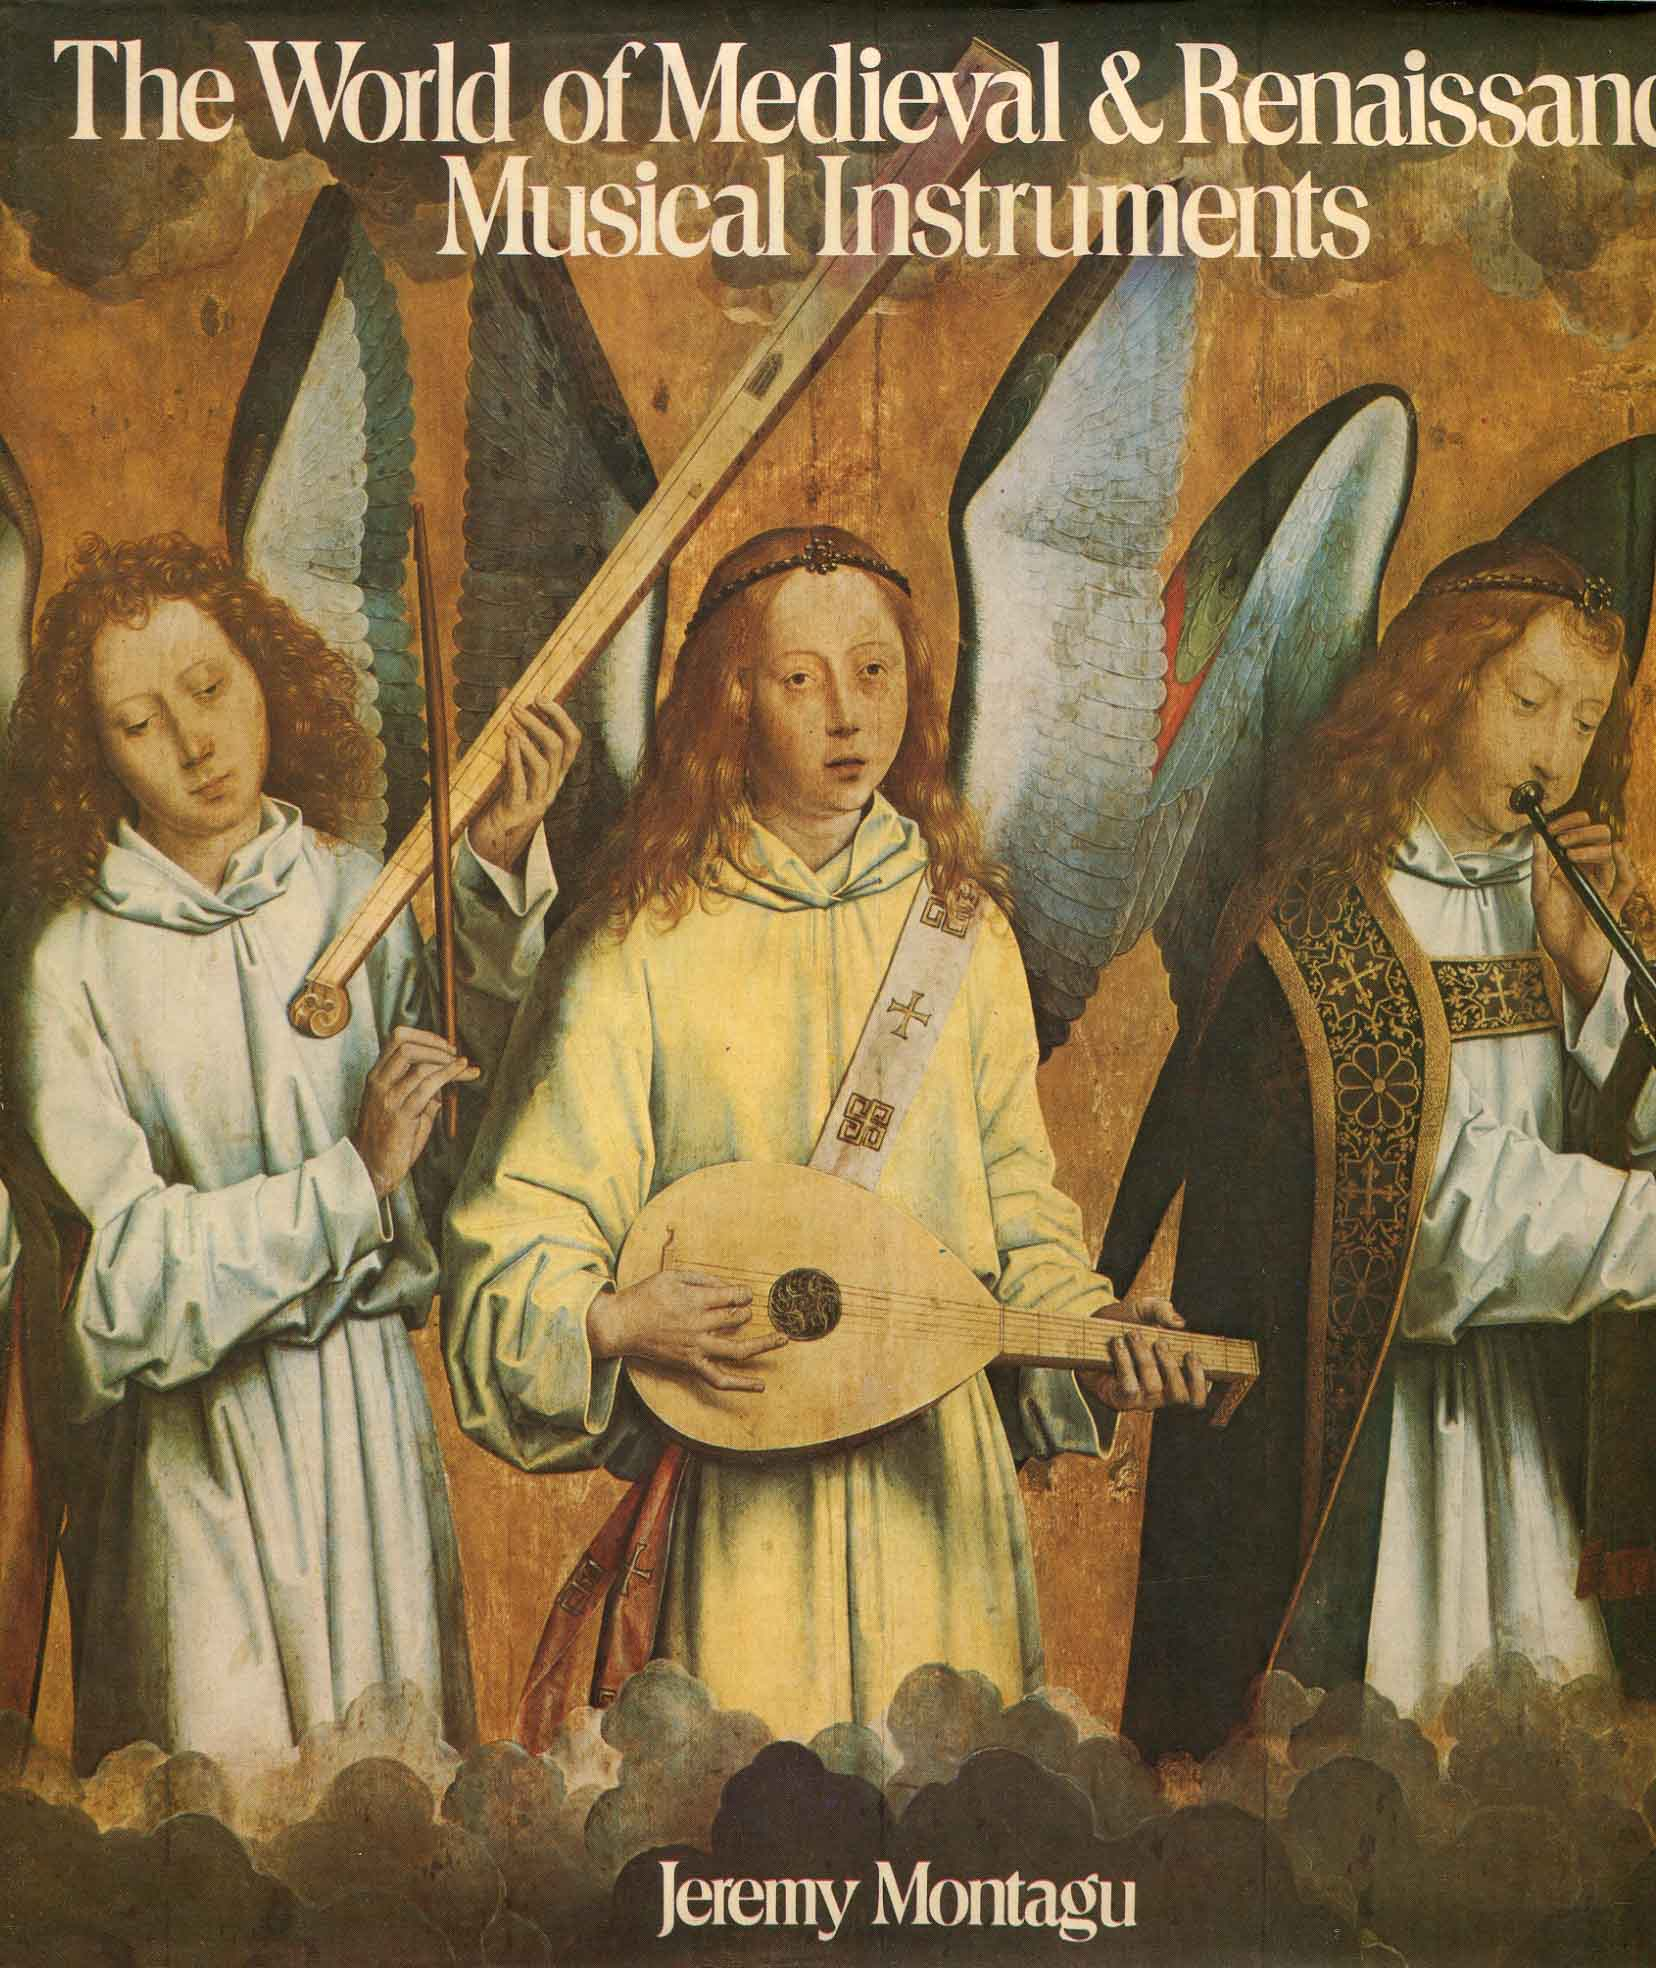 The world of medieval & Renaissance musical instruments